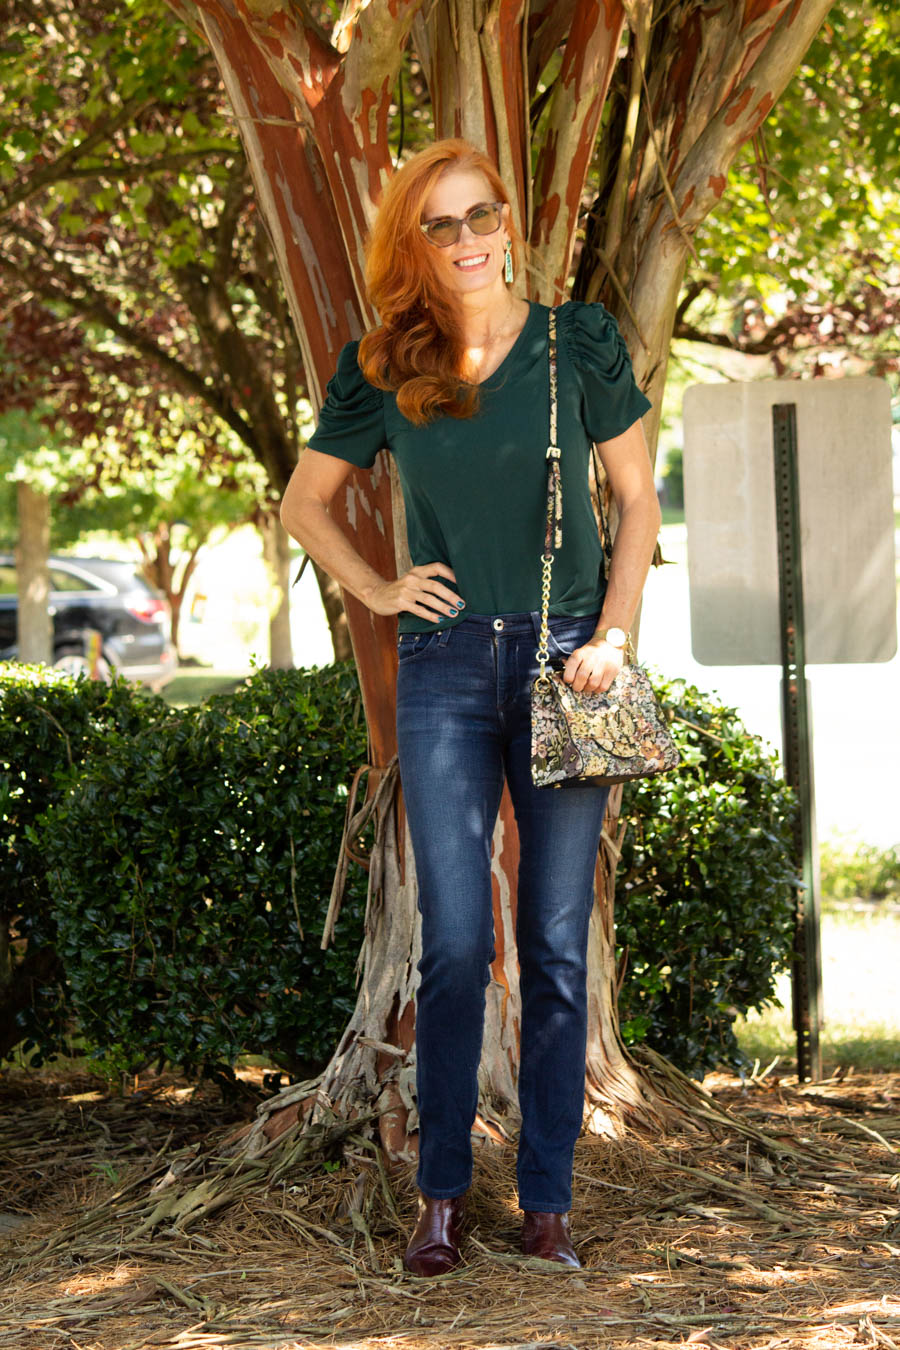 Pine green puff sleeved top and AG dark denim jeans